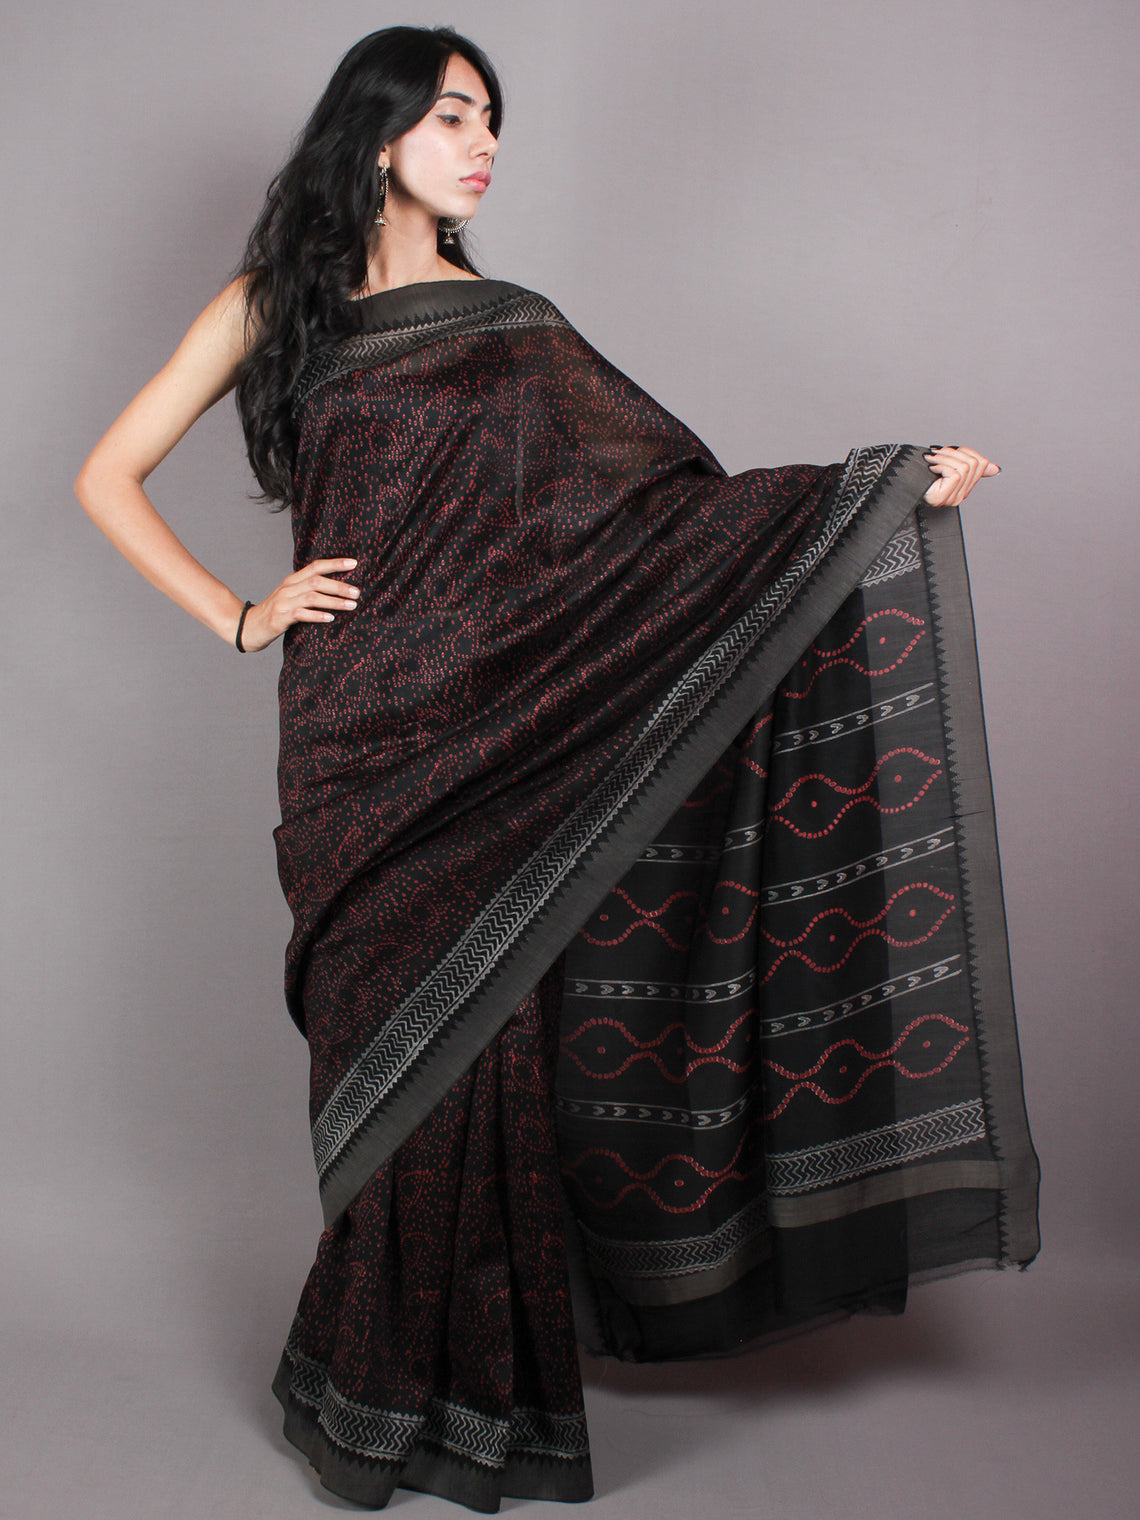 Black Red Hand Block Printed in Natural Vegetable Colors Chanderi Saree With Geecha Border - S03170380